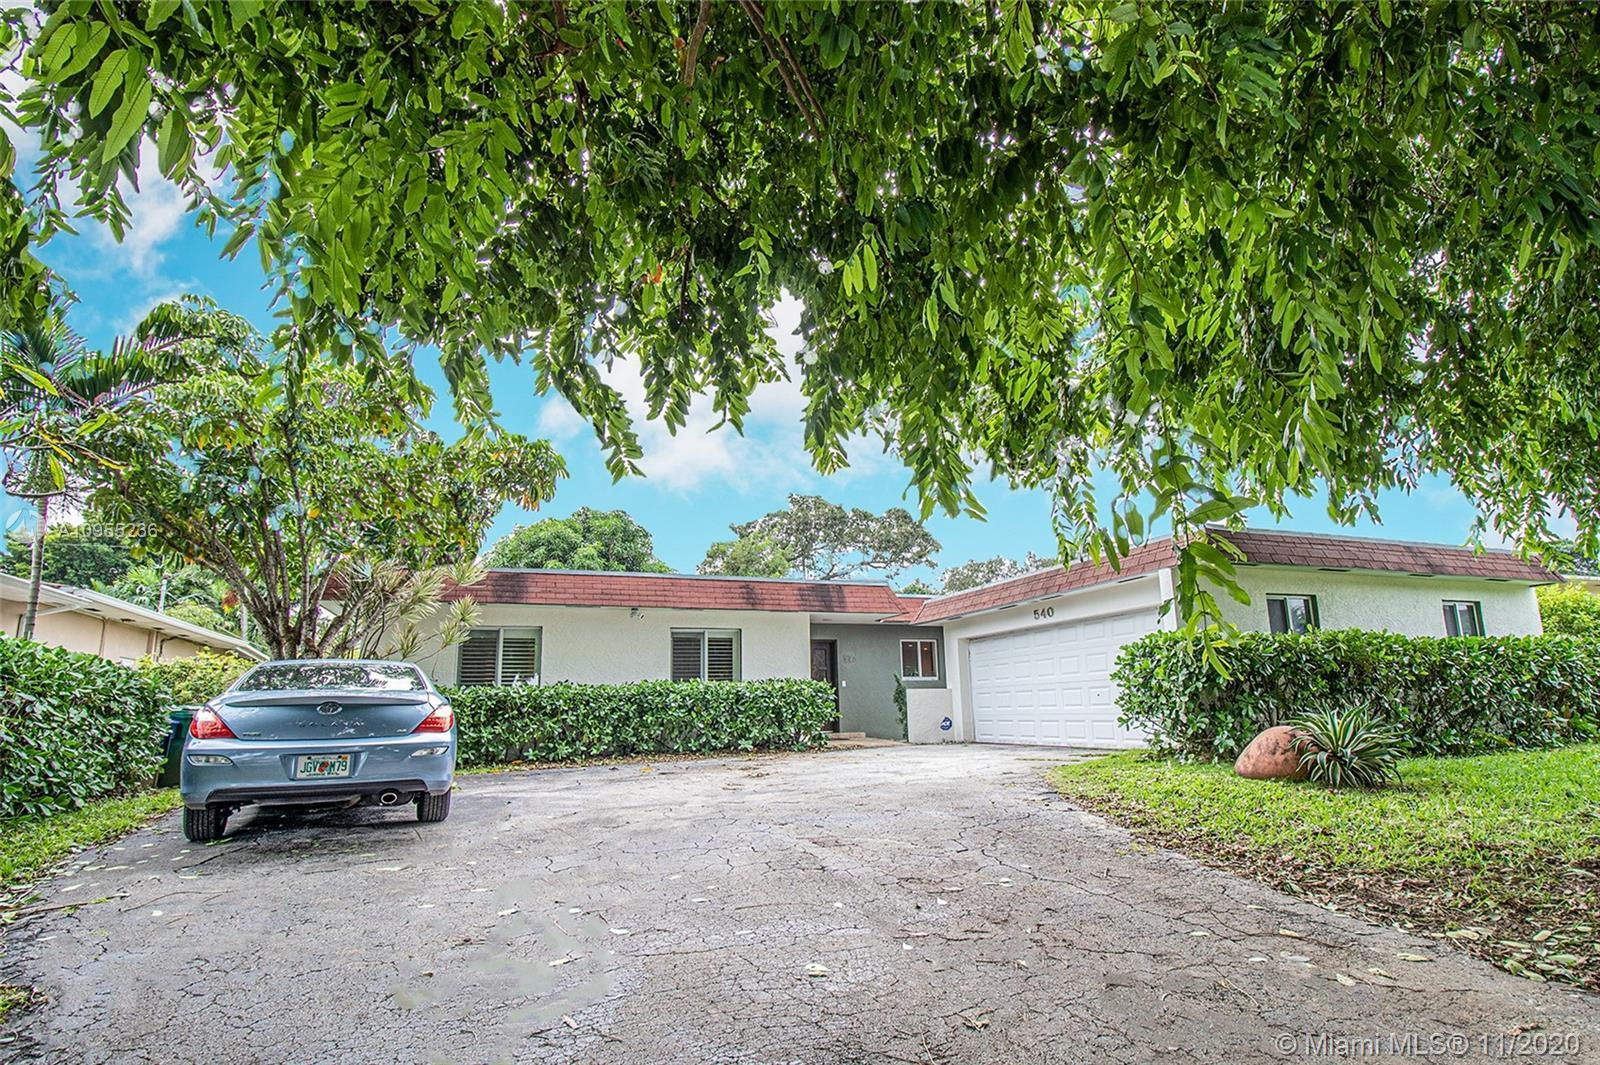 Beautiful home in Miami Shores that features 3 beds and 2 baths, laundry room with a tub, a 2 car ga